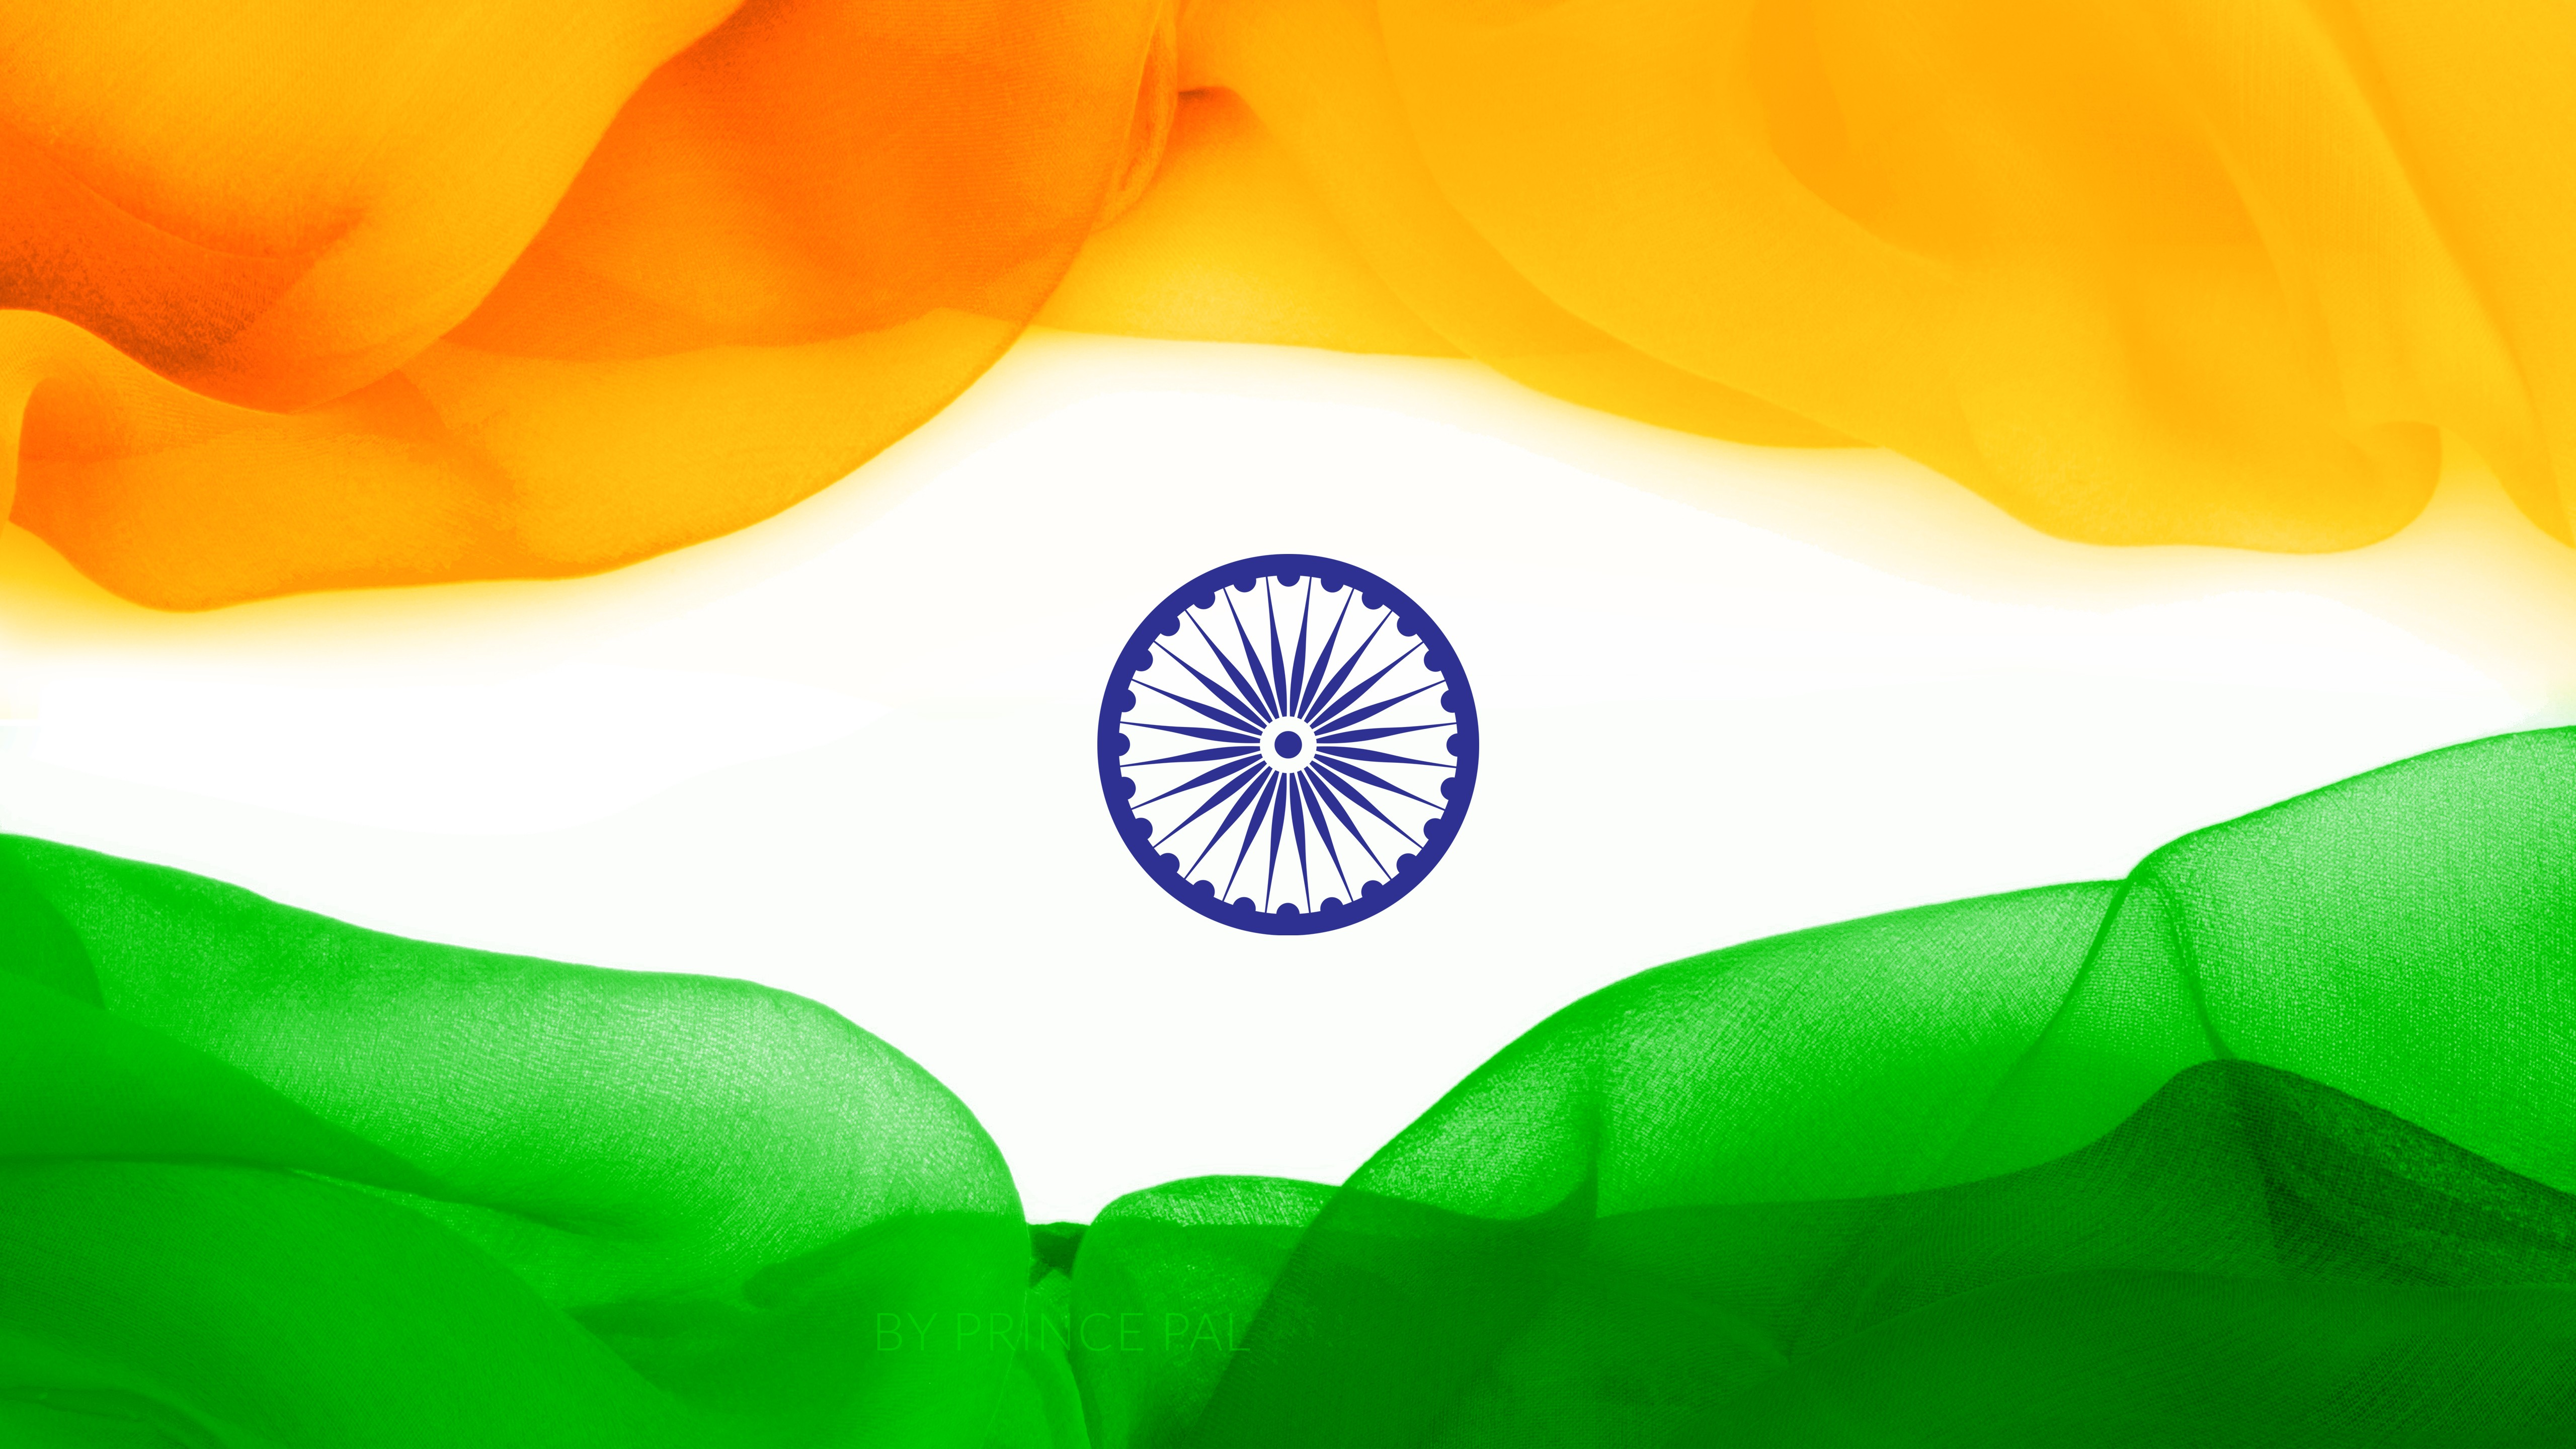 Flower With Indian Flag Hd: Download HD Wallpaper For Free